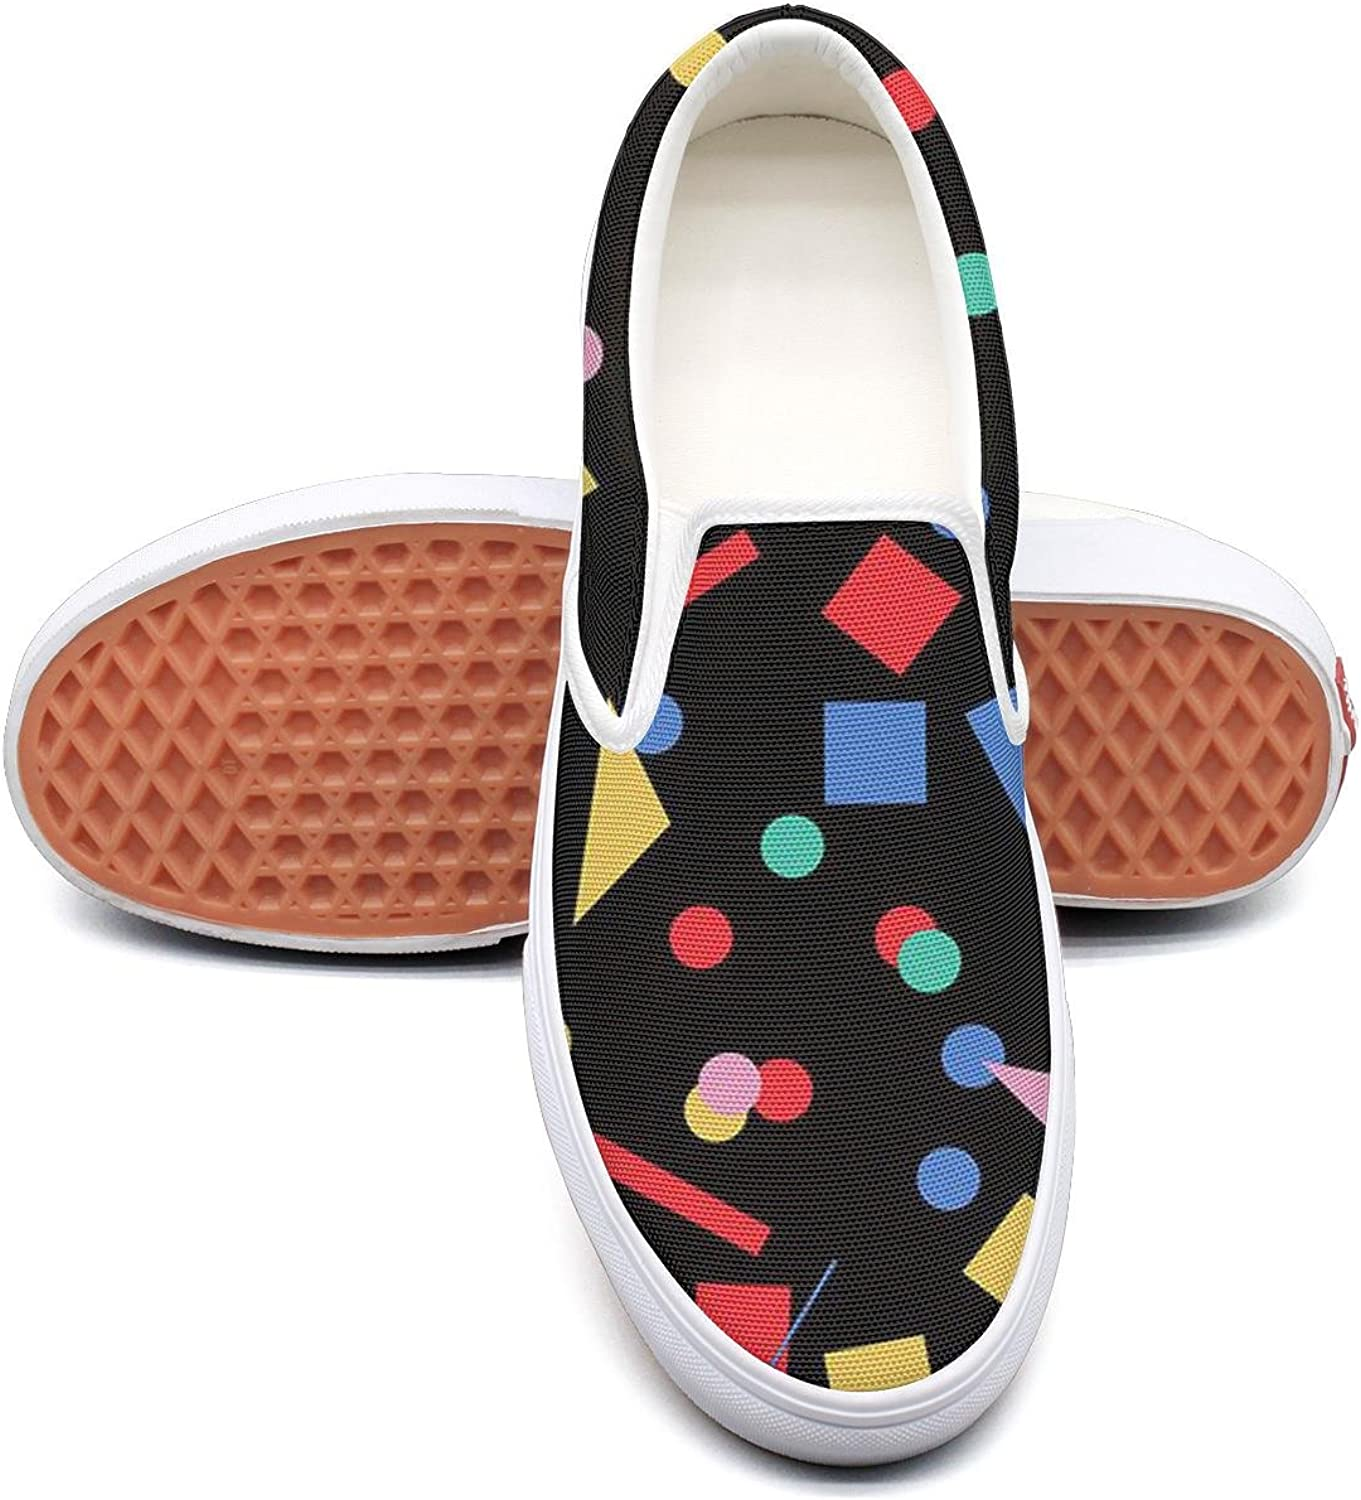 Women's Fashion Slip-ONS sneakersCool Geometrical Pattern Lace-up Lightweight Canvas Sneakers shoes